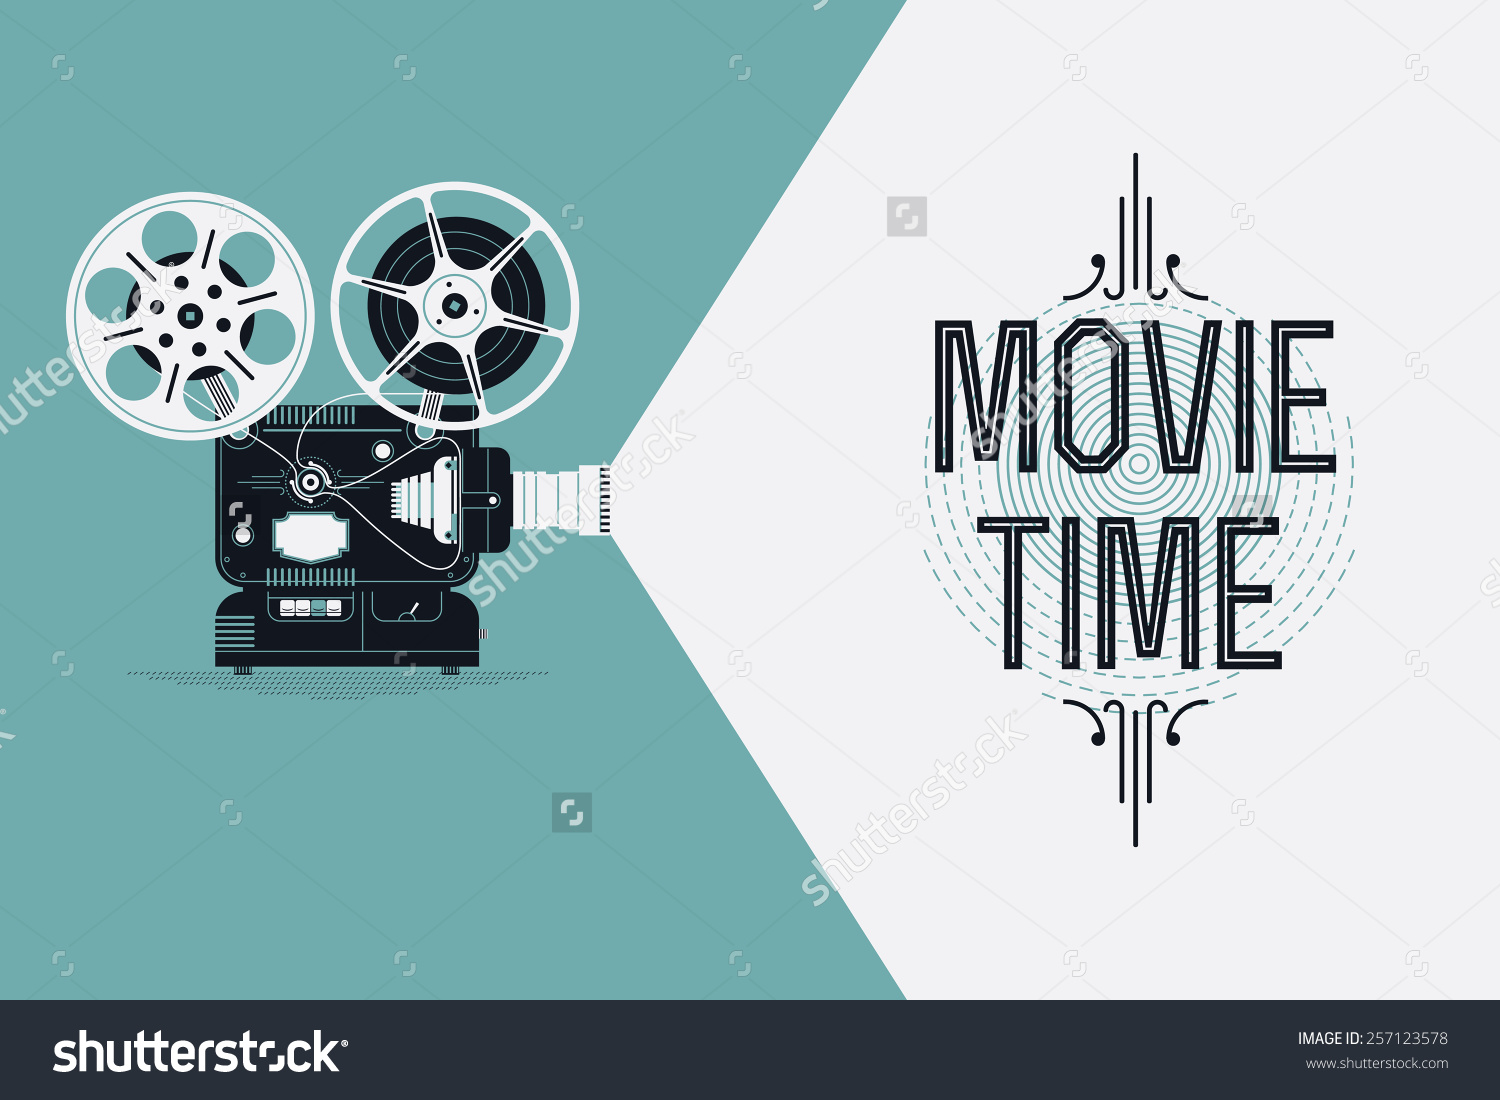 stock-vector-cool-retro-movie-projector-vector-detailed-poster-leaflet-or-banner-template-with-sample-text-257123578.jpg